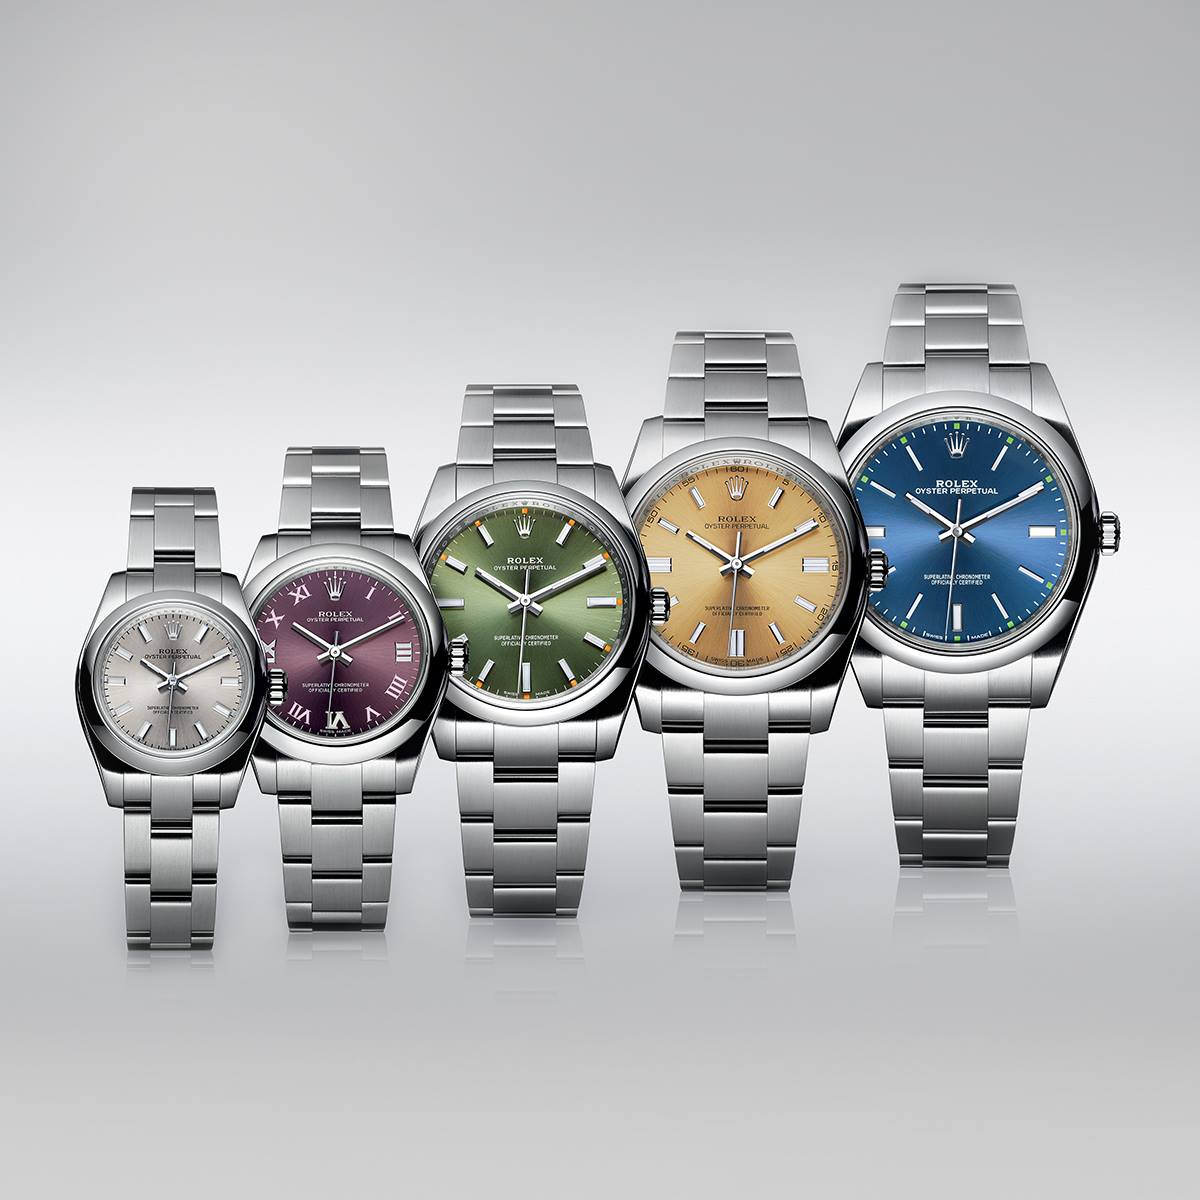 Rolex Oyster Perpetual collection-